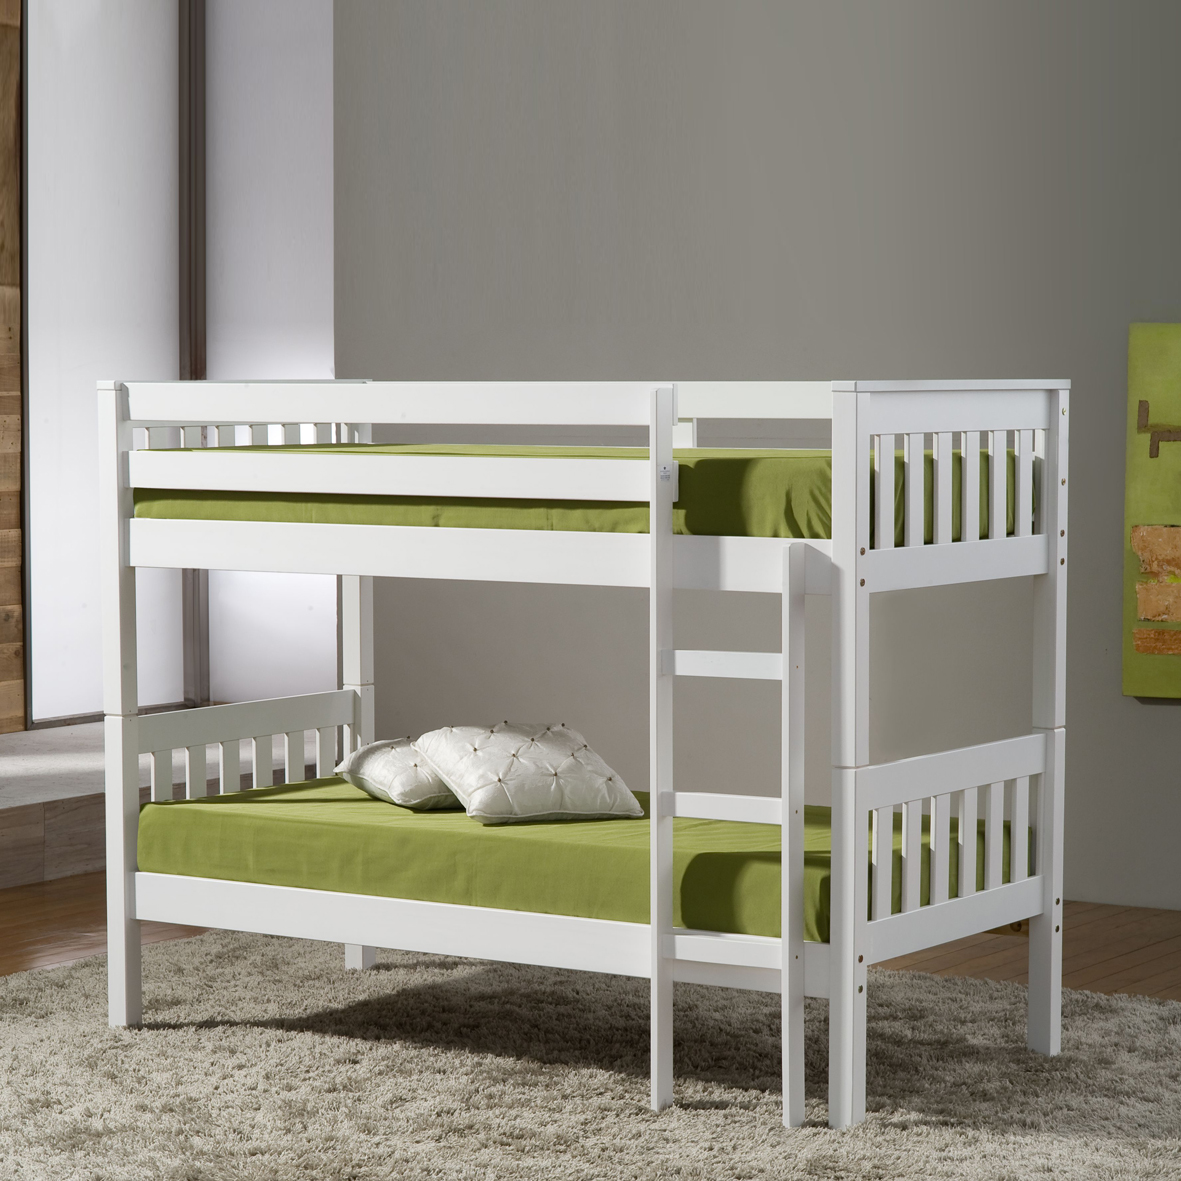 Loft Bedroom Designs Bunk Bed For Small Space Chasing The Feeling Of